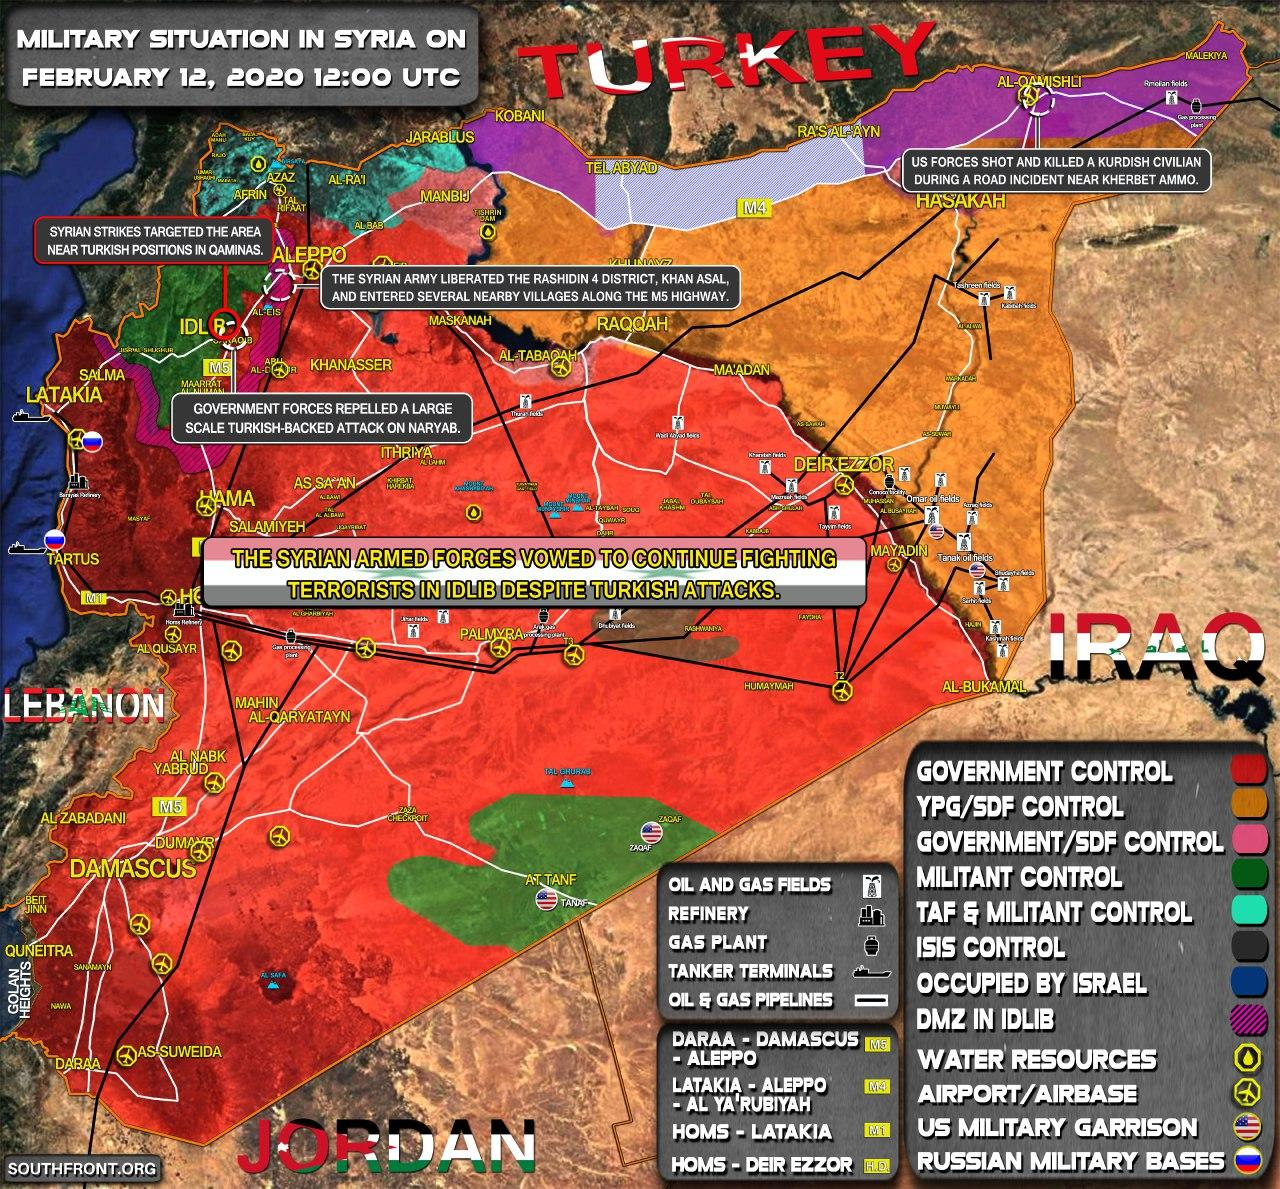 Mission Accomplished: M5 Highway Completely Secured By Syrian Army